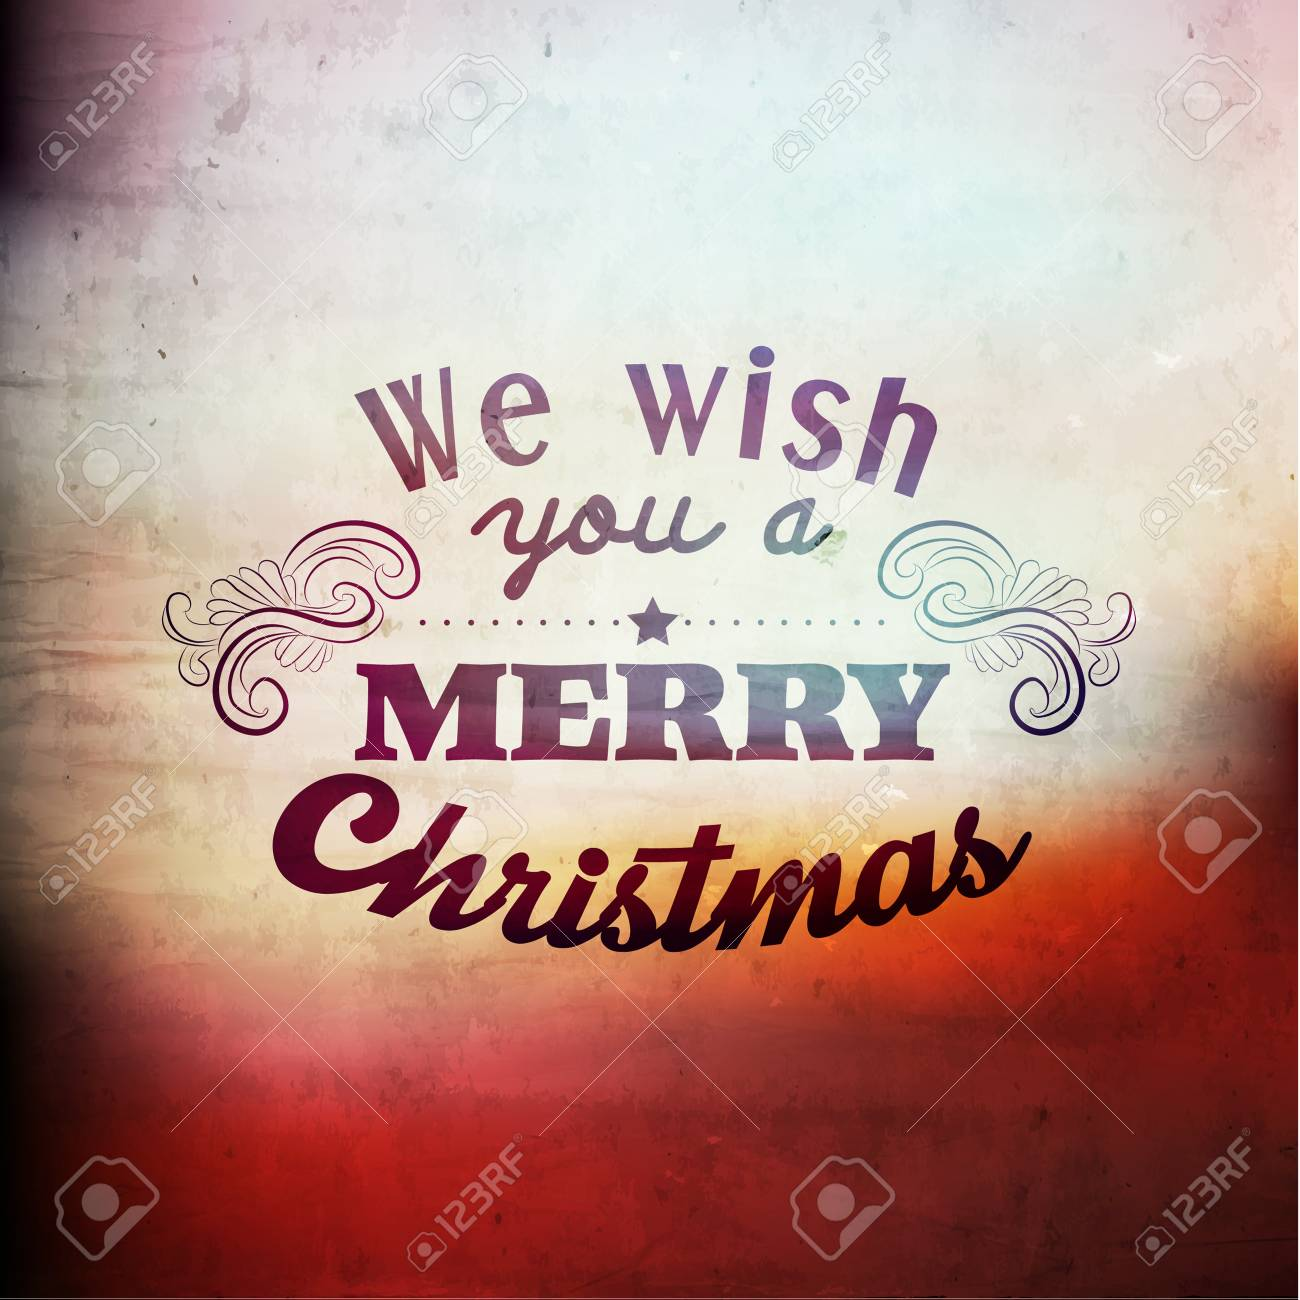 Merry christmas greetings quote vector illustration design royalty merry christmas greetings quote vector illustration design stock vector 33328082 m4hsunfo